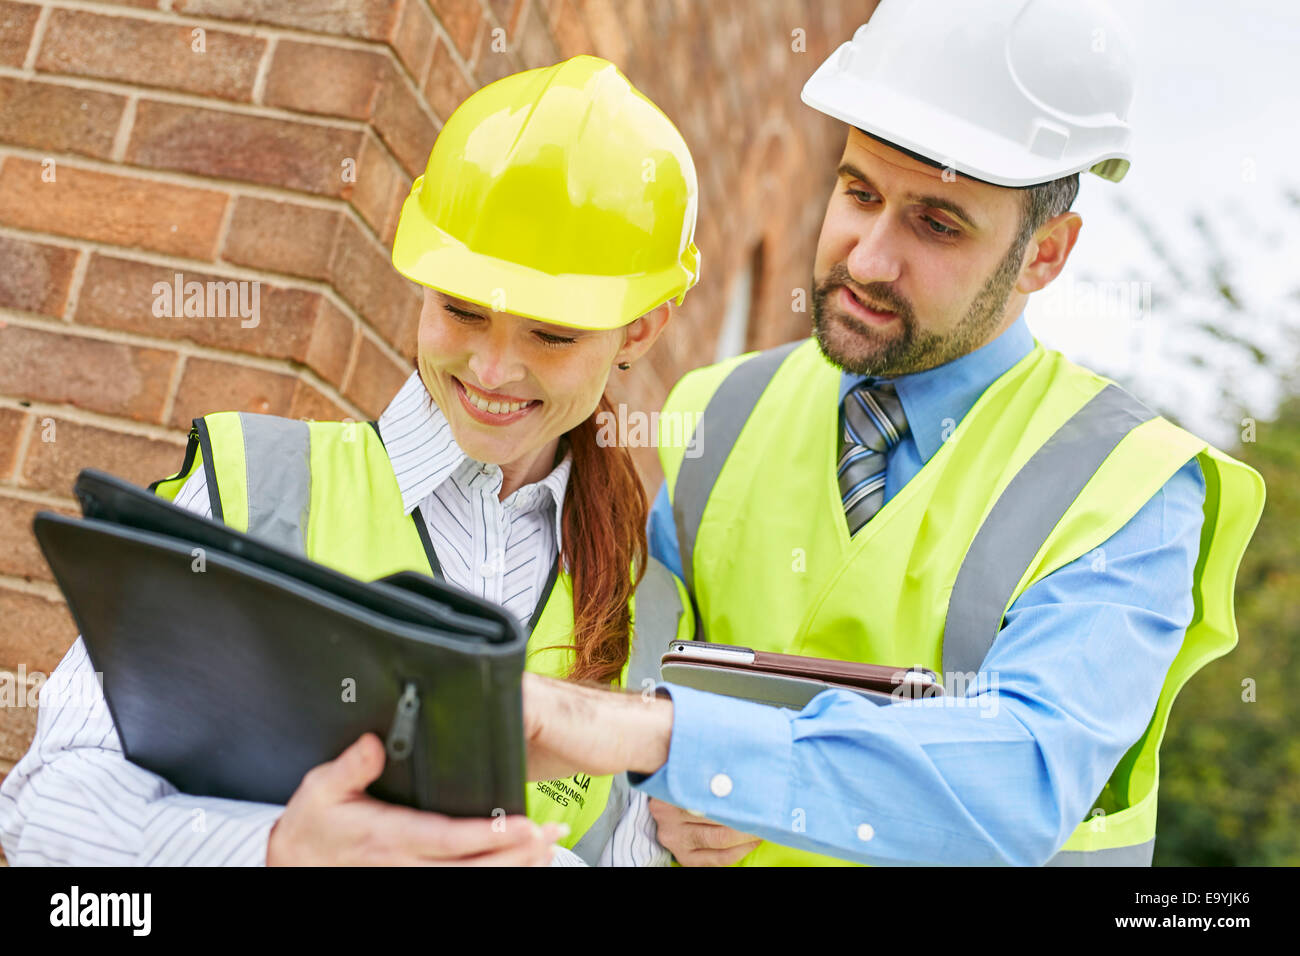 Architects discussing plans at a building site - Stock Image